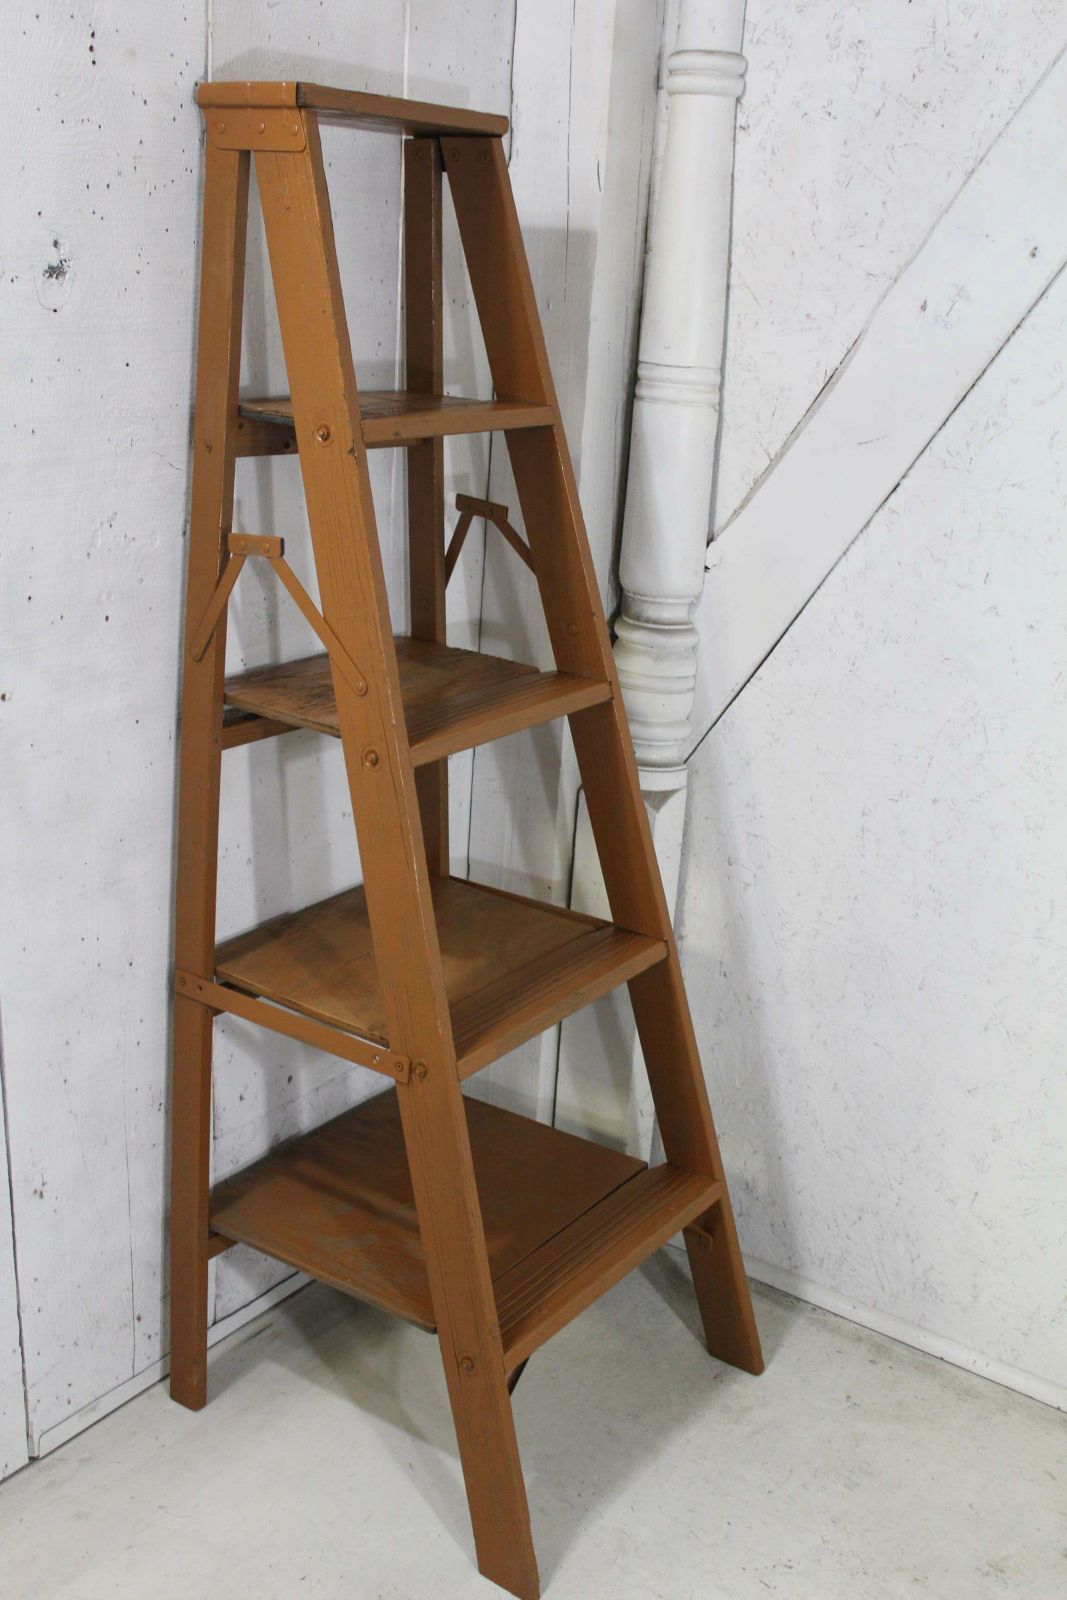 buy online 6b11f 3bb16 5 Step Wood Vintage Shelf Unit Made From Antique Ladder 56t ...